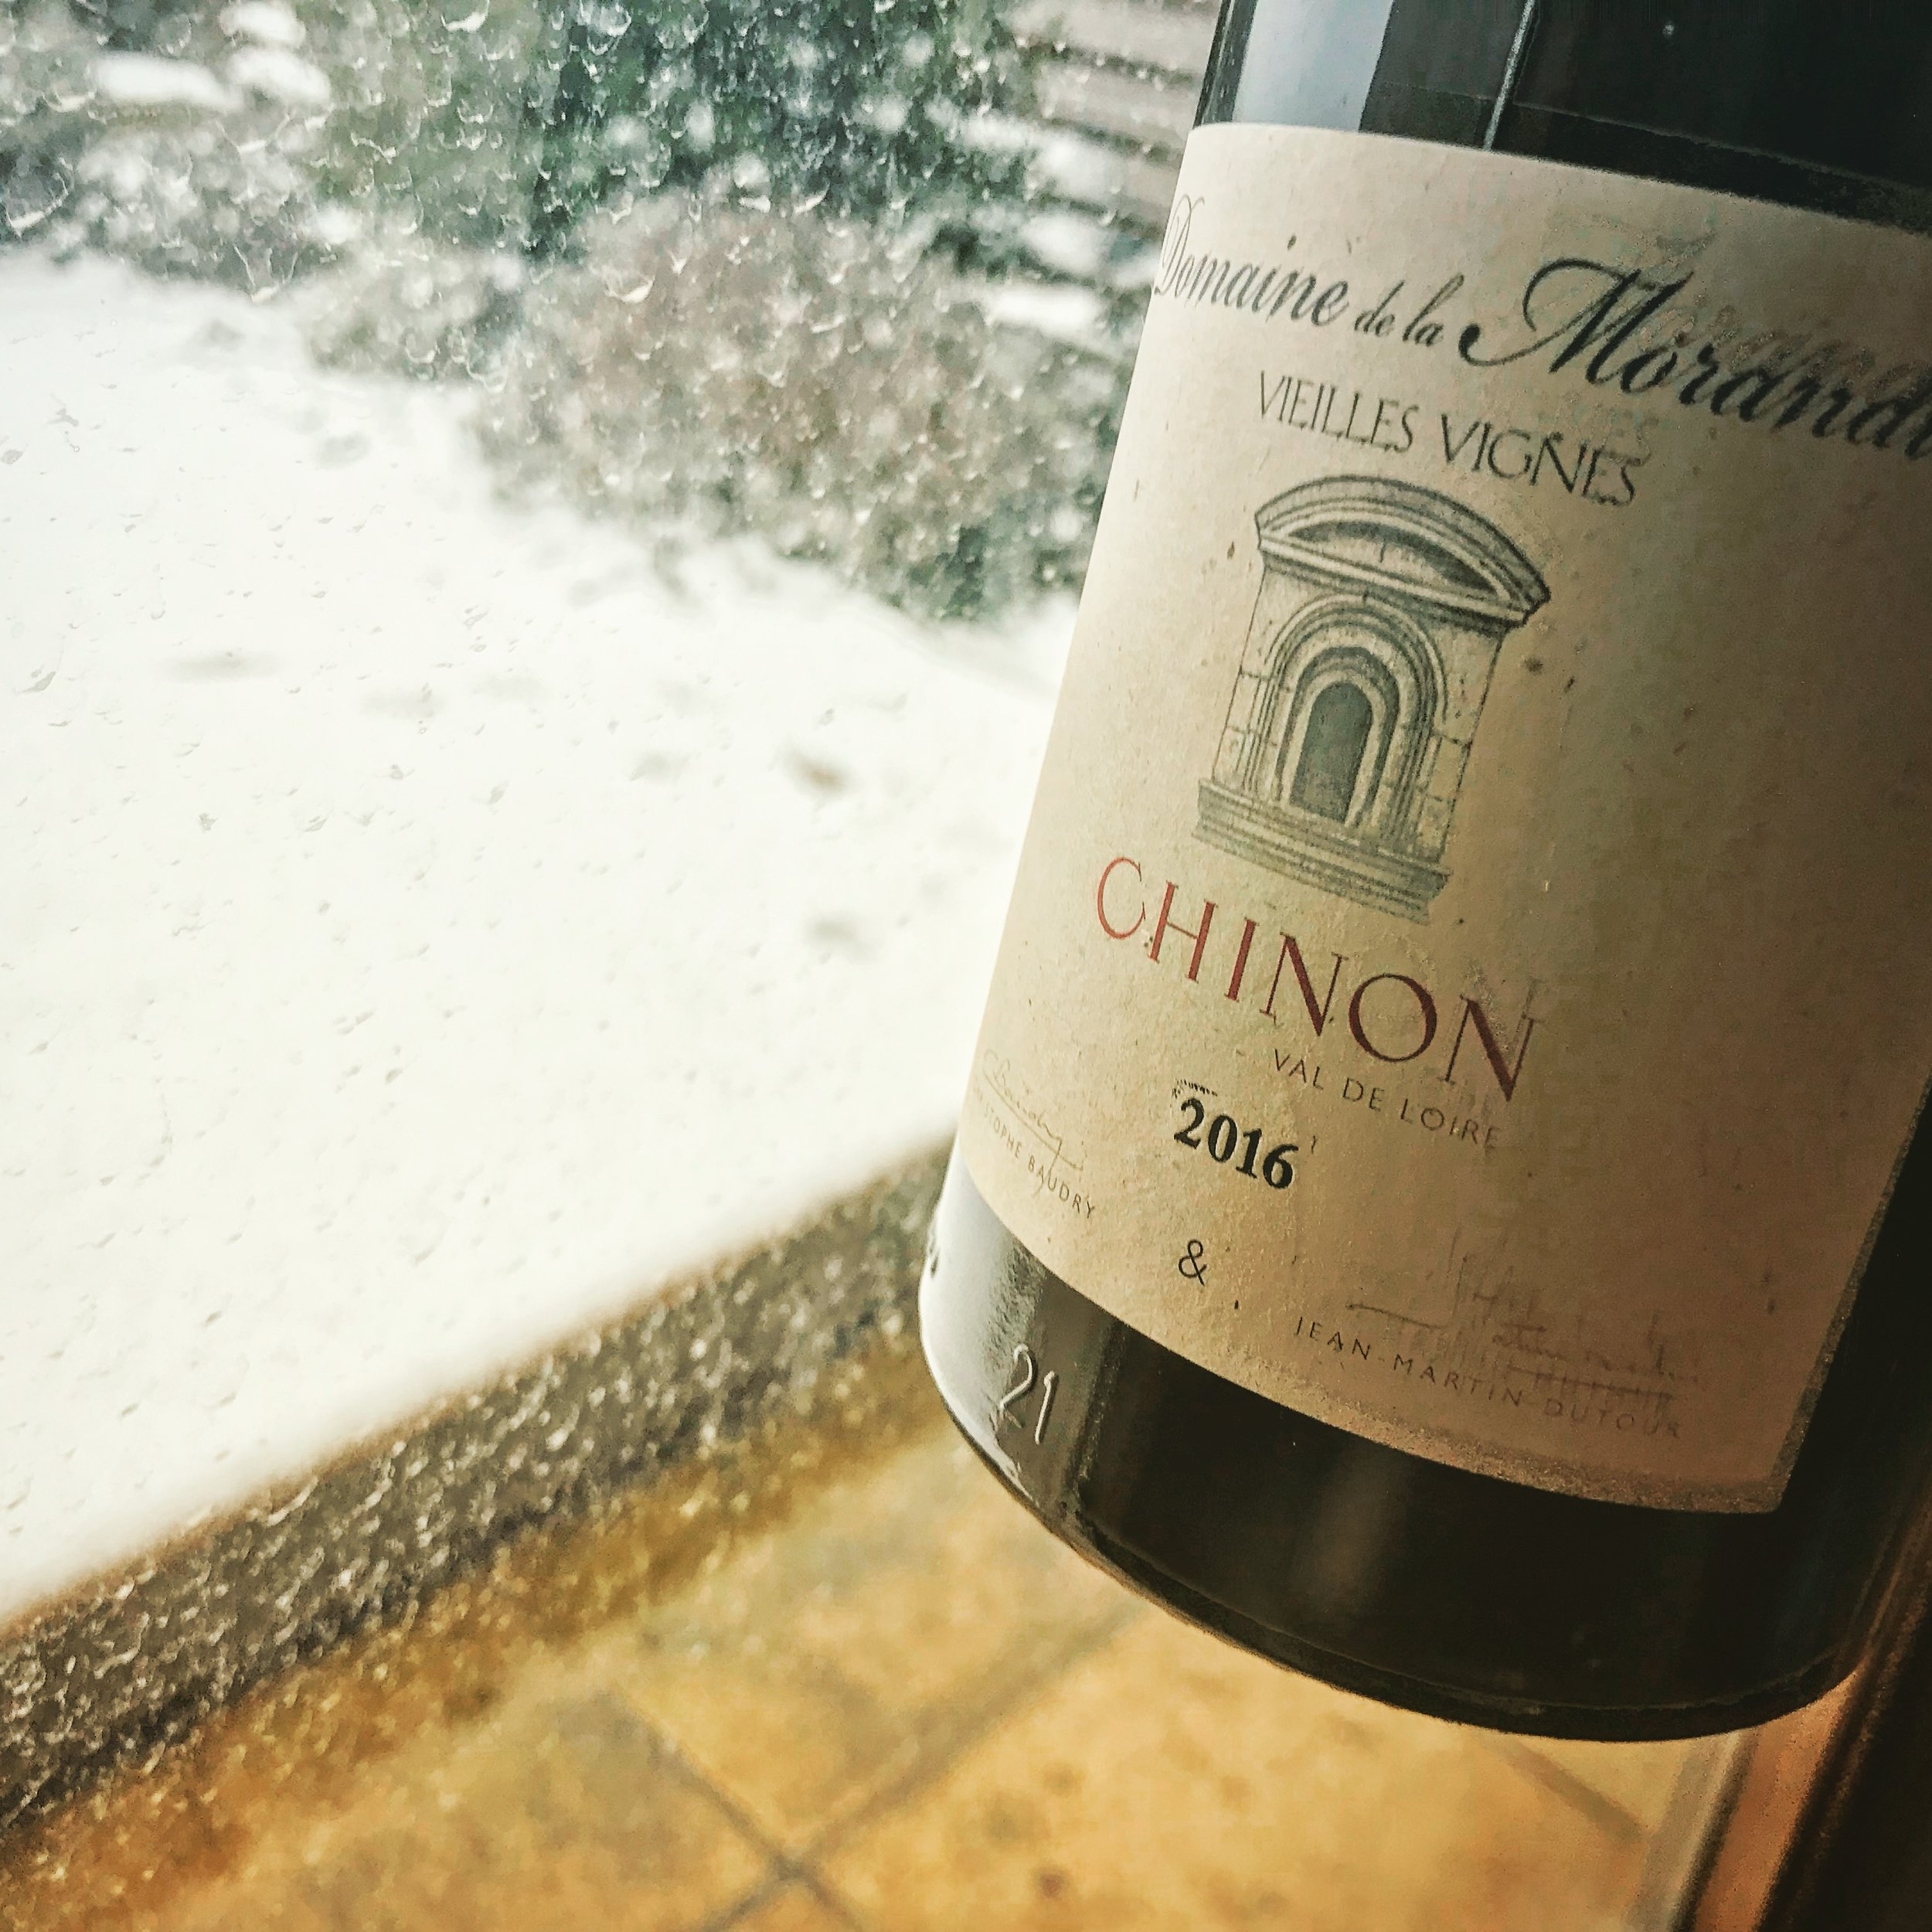 Domaine de la Morandiere  Chinon 2016  (About 7€ Proxi)  Another fairly average wine: quite fruity, lighter than the organic wine and not nearly as pleasant. A little bitter with a slight aftertaste.  The organic wine was by far the nicest, really in a different league, which was a surprise considering it was the most reasonable. The Barsanne is going on my list of 'keepers'!  So to finish: my words of the week 'Moxie' meaning slang for courage, nerve and determination; and just because it's relevant to my life today - and very cute 'flakelet' meaning a flake of snow!